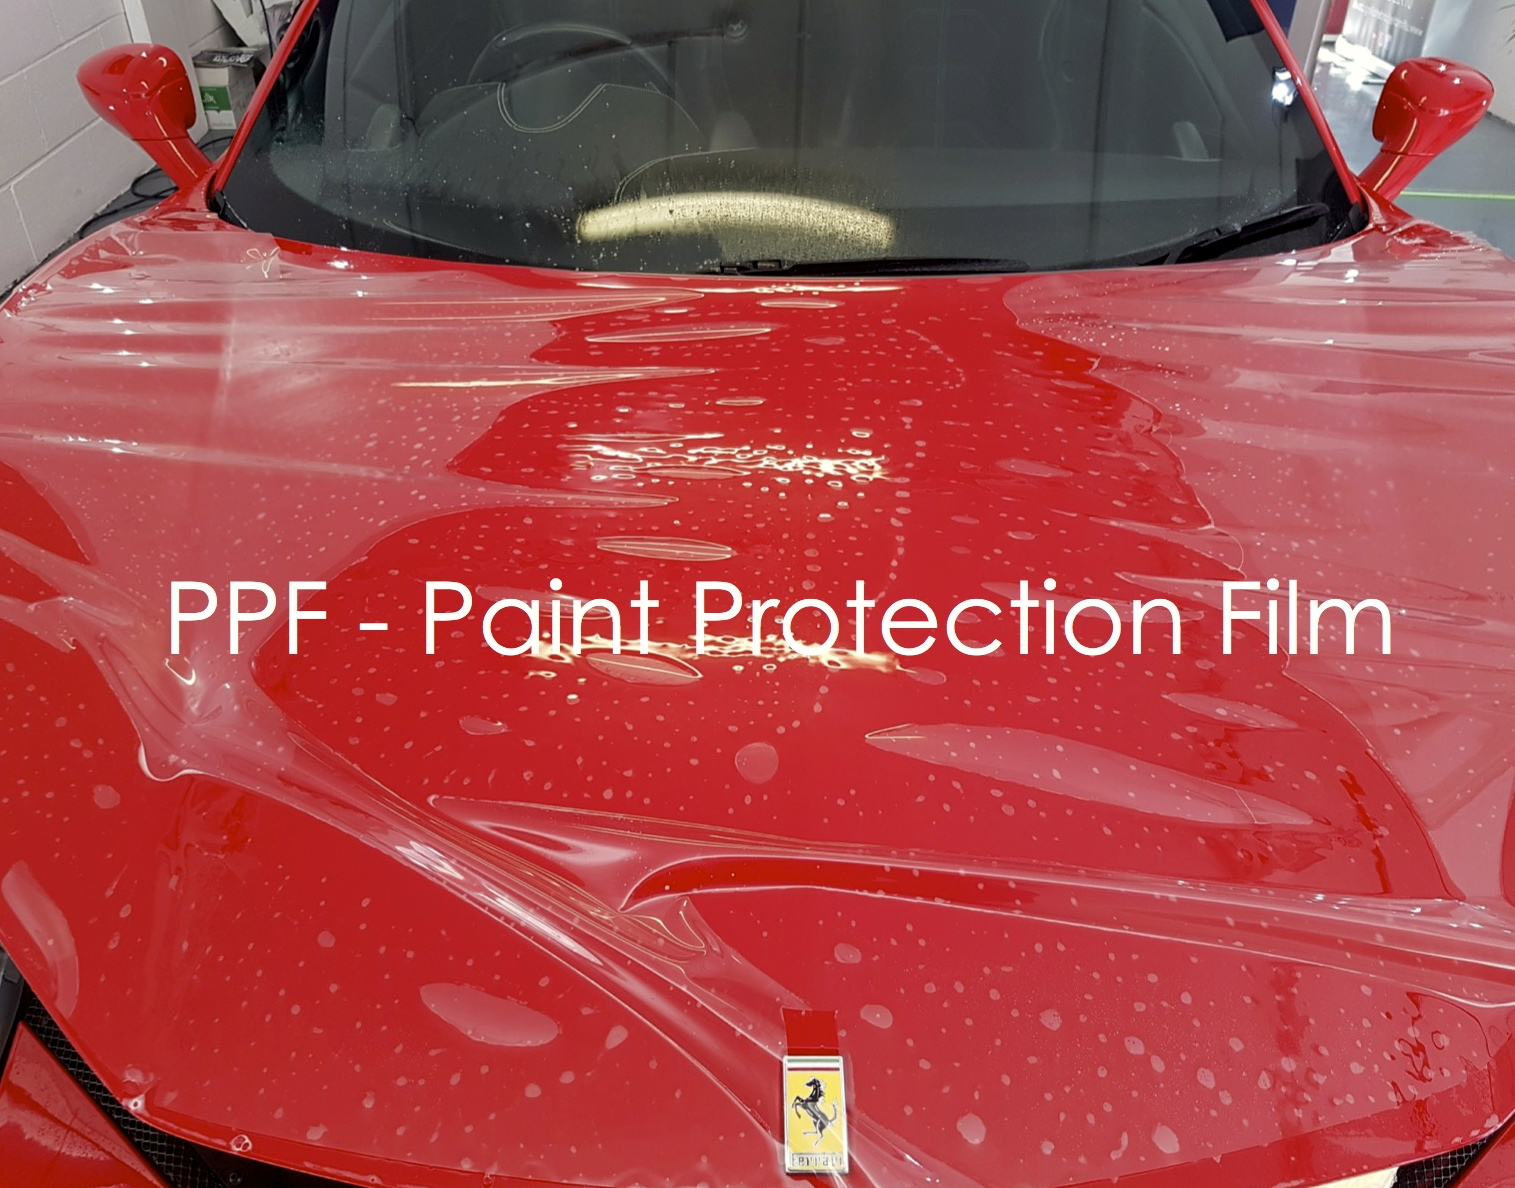 Copy of Ferrari 458 PPF Paint Protection Film